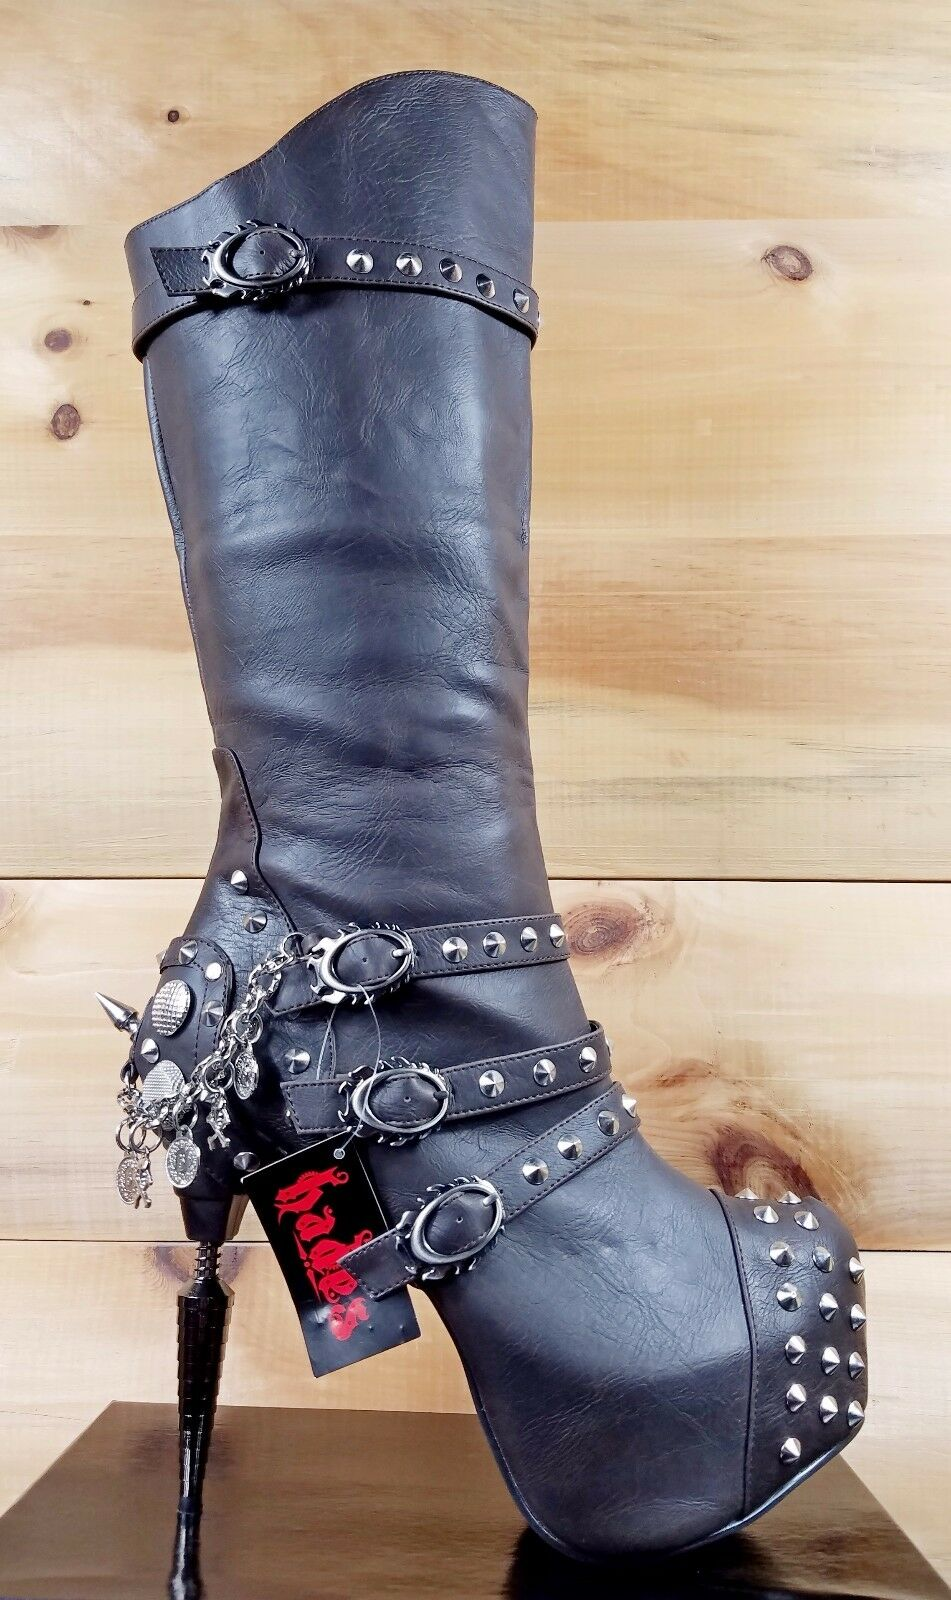 Hades Valda Buckle Chain Charm Spiked Platform Knee Boot Sexy Biker Black Brown